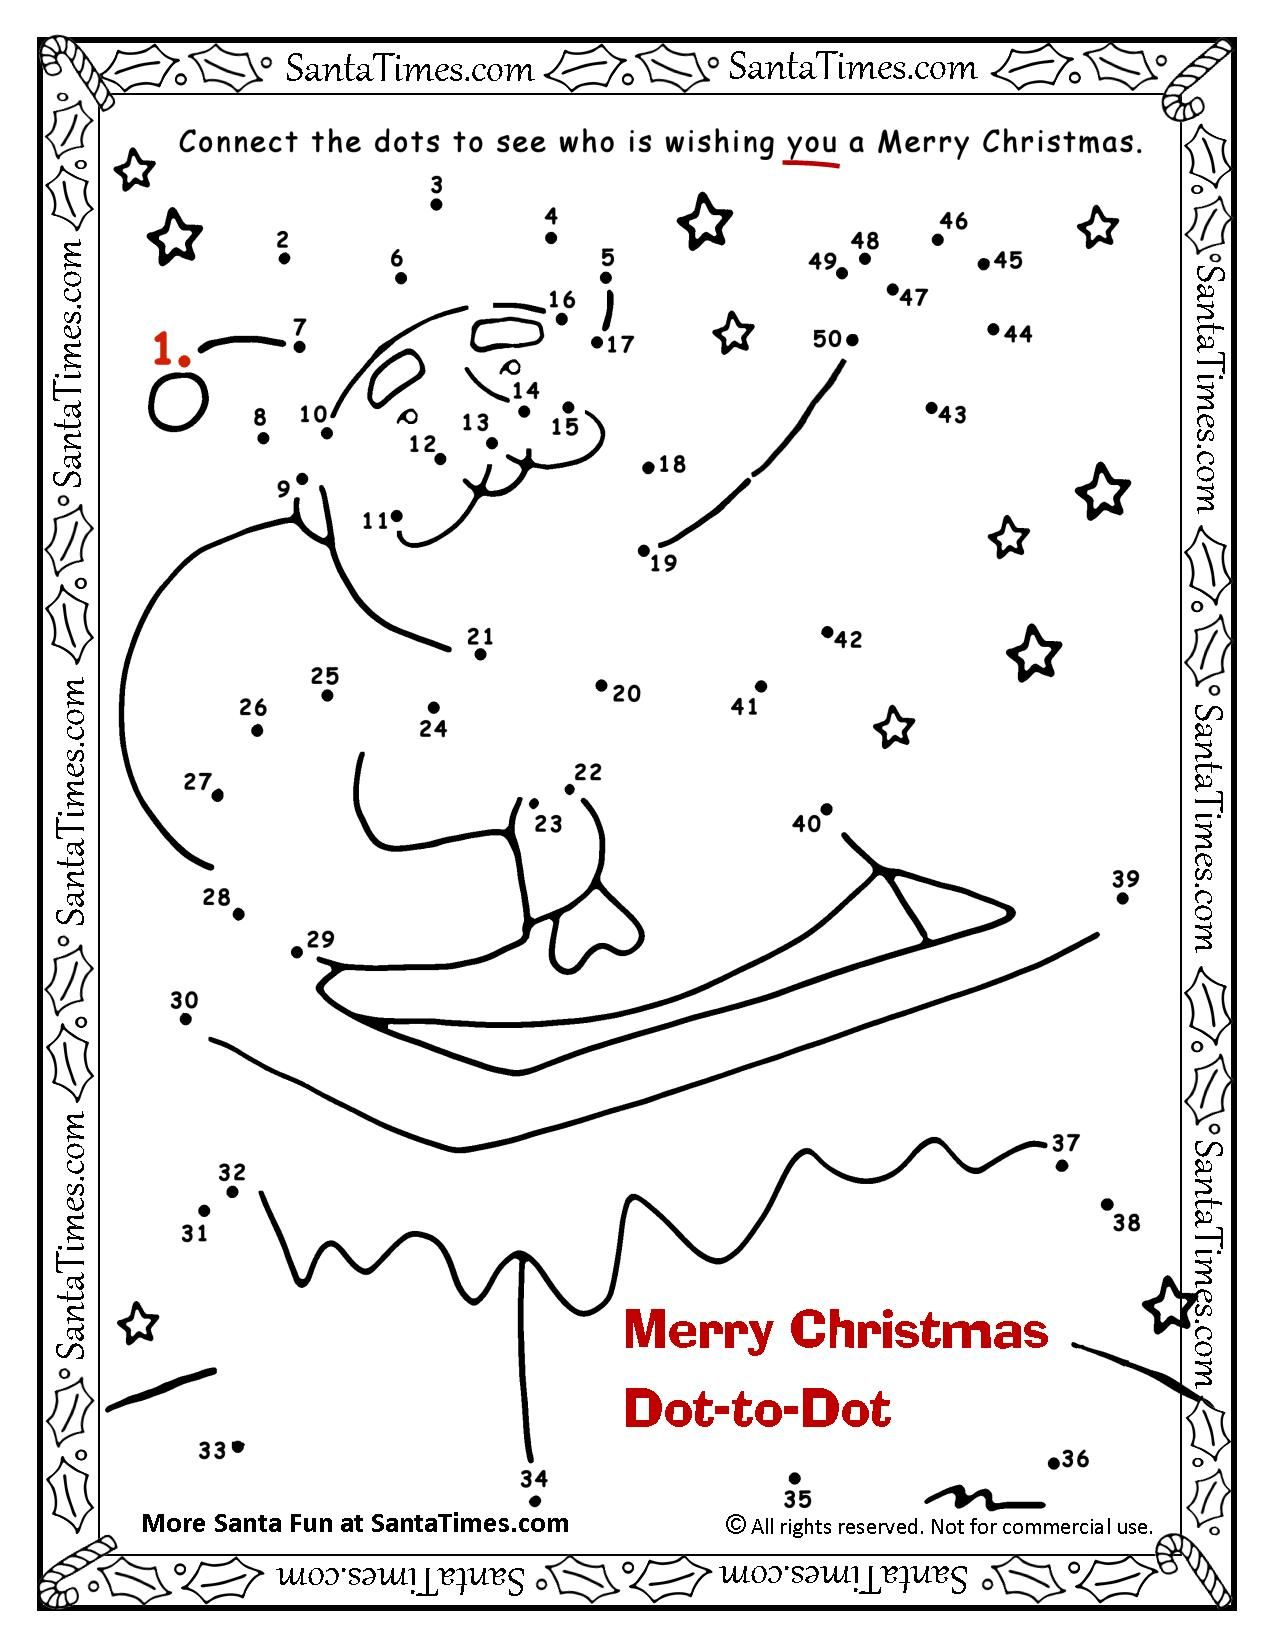 Merry Christmas Dot To Dot Connect The Dots To See Who Is Wishing You A Merry Christmas